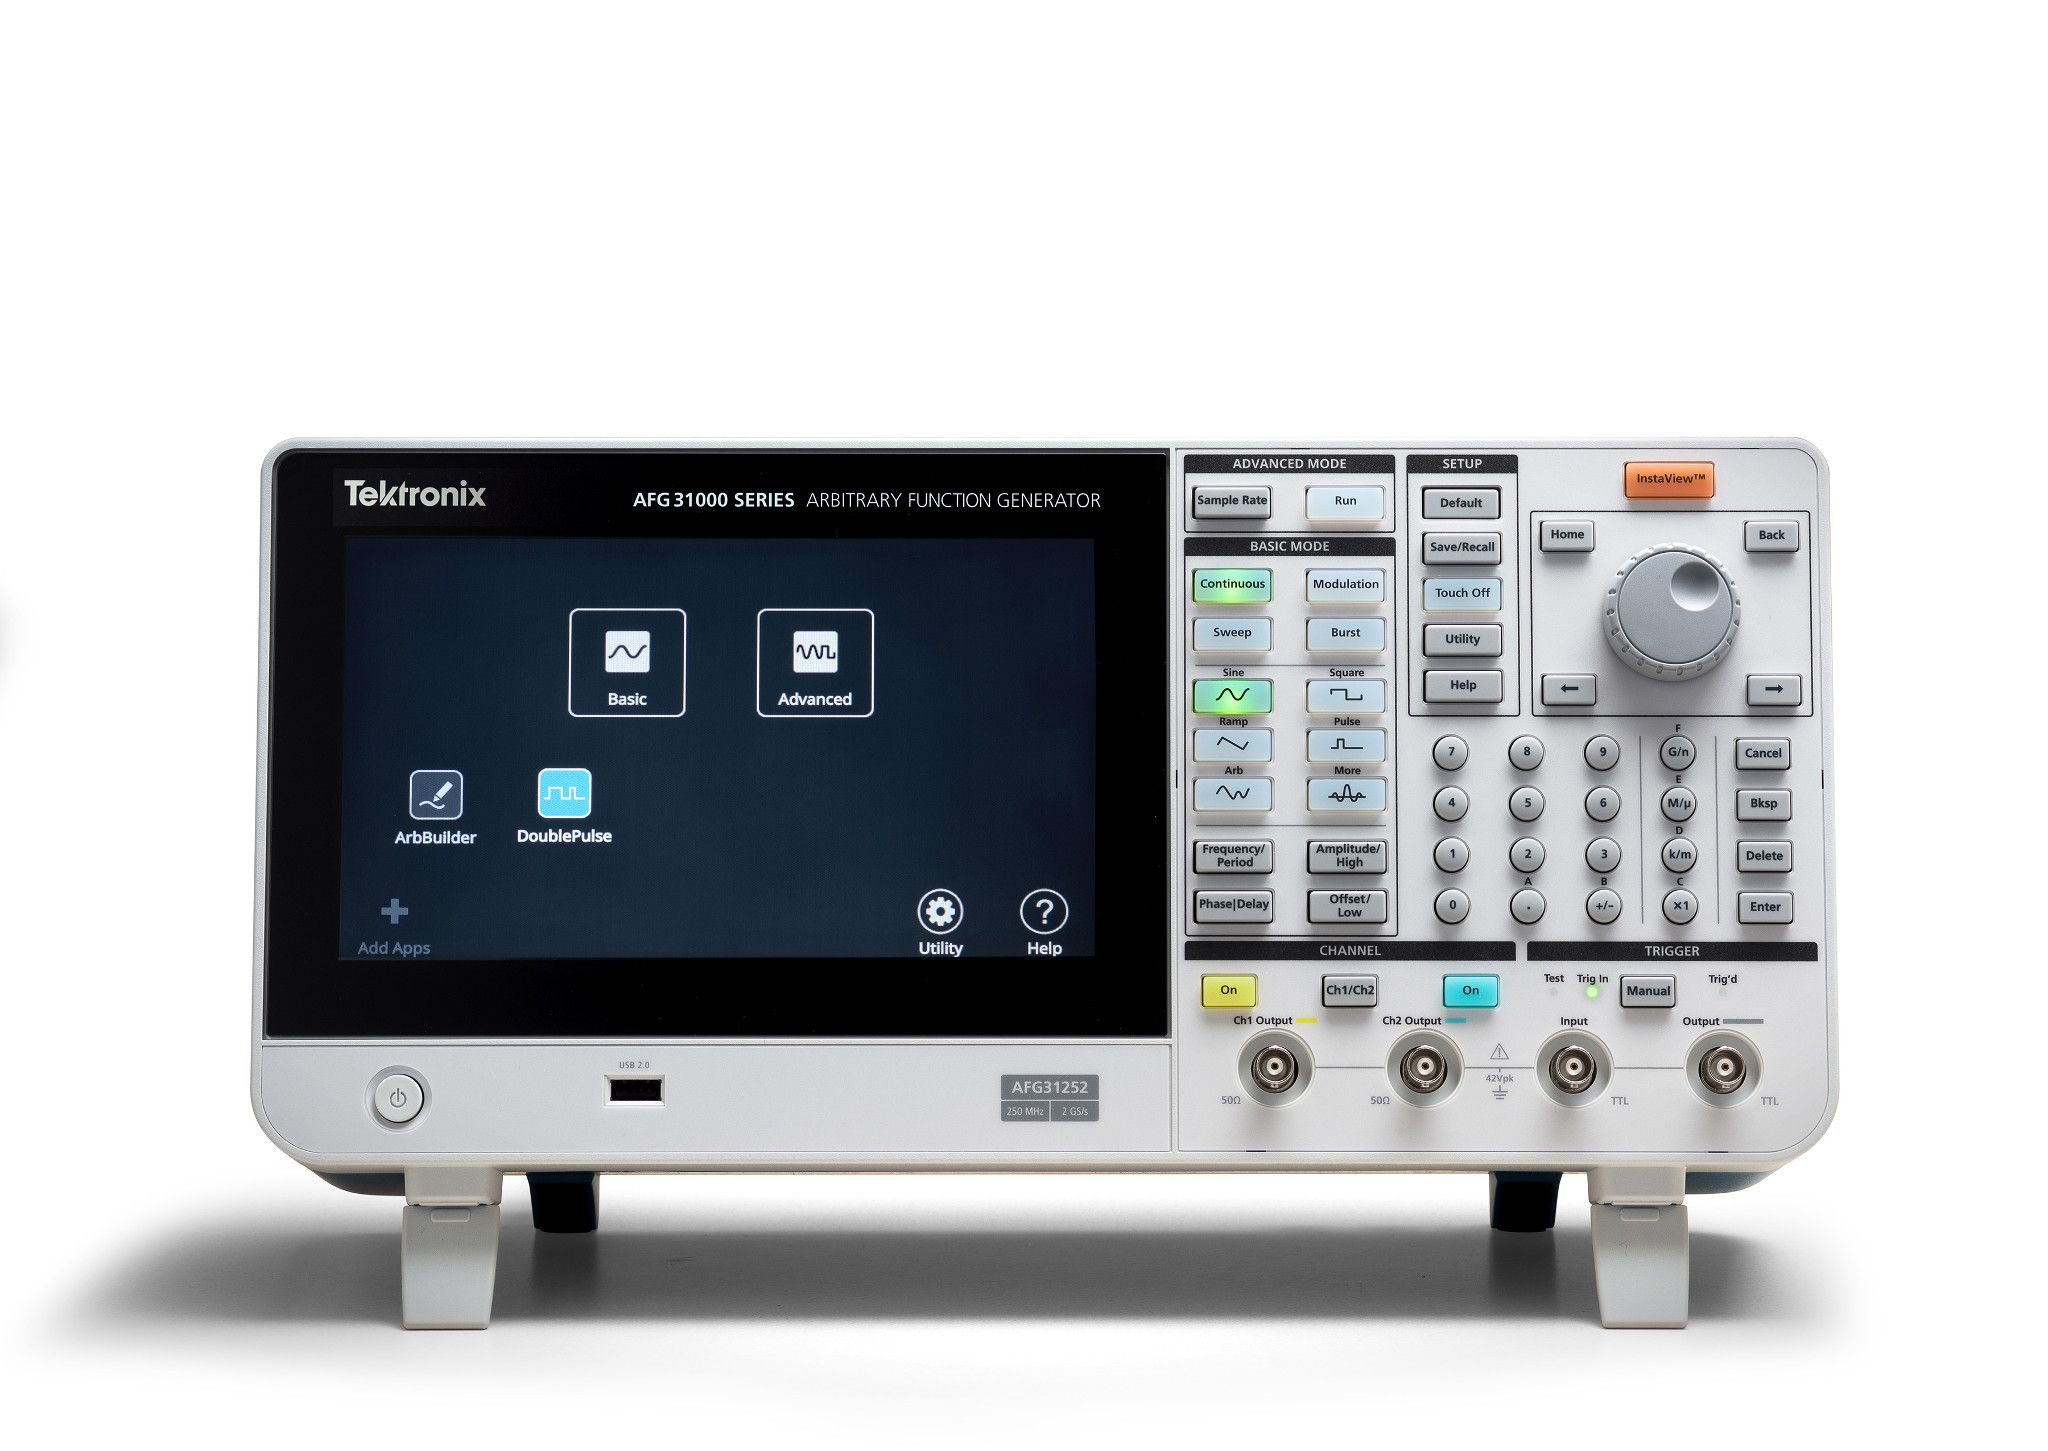 AFG31000 arbitrary function generator with built-in double pulse test functionality